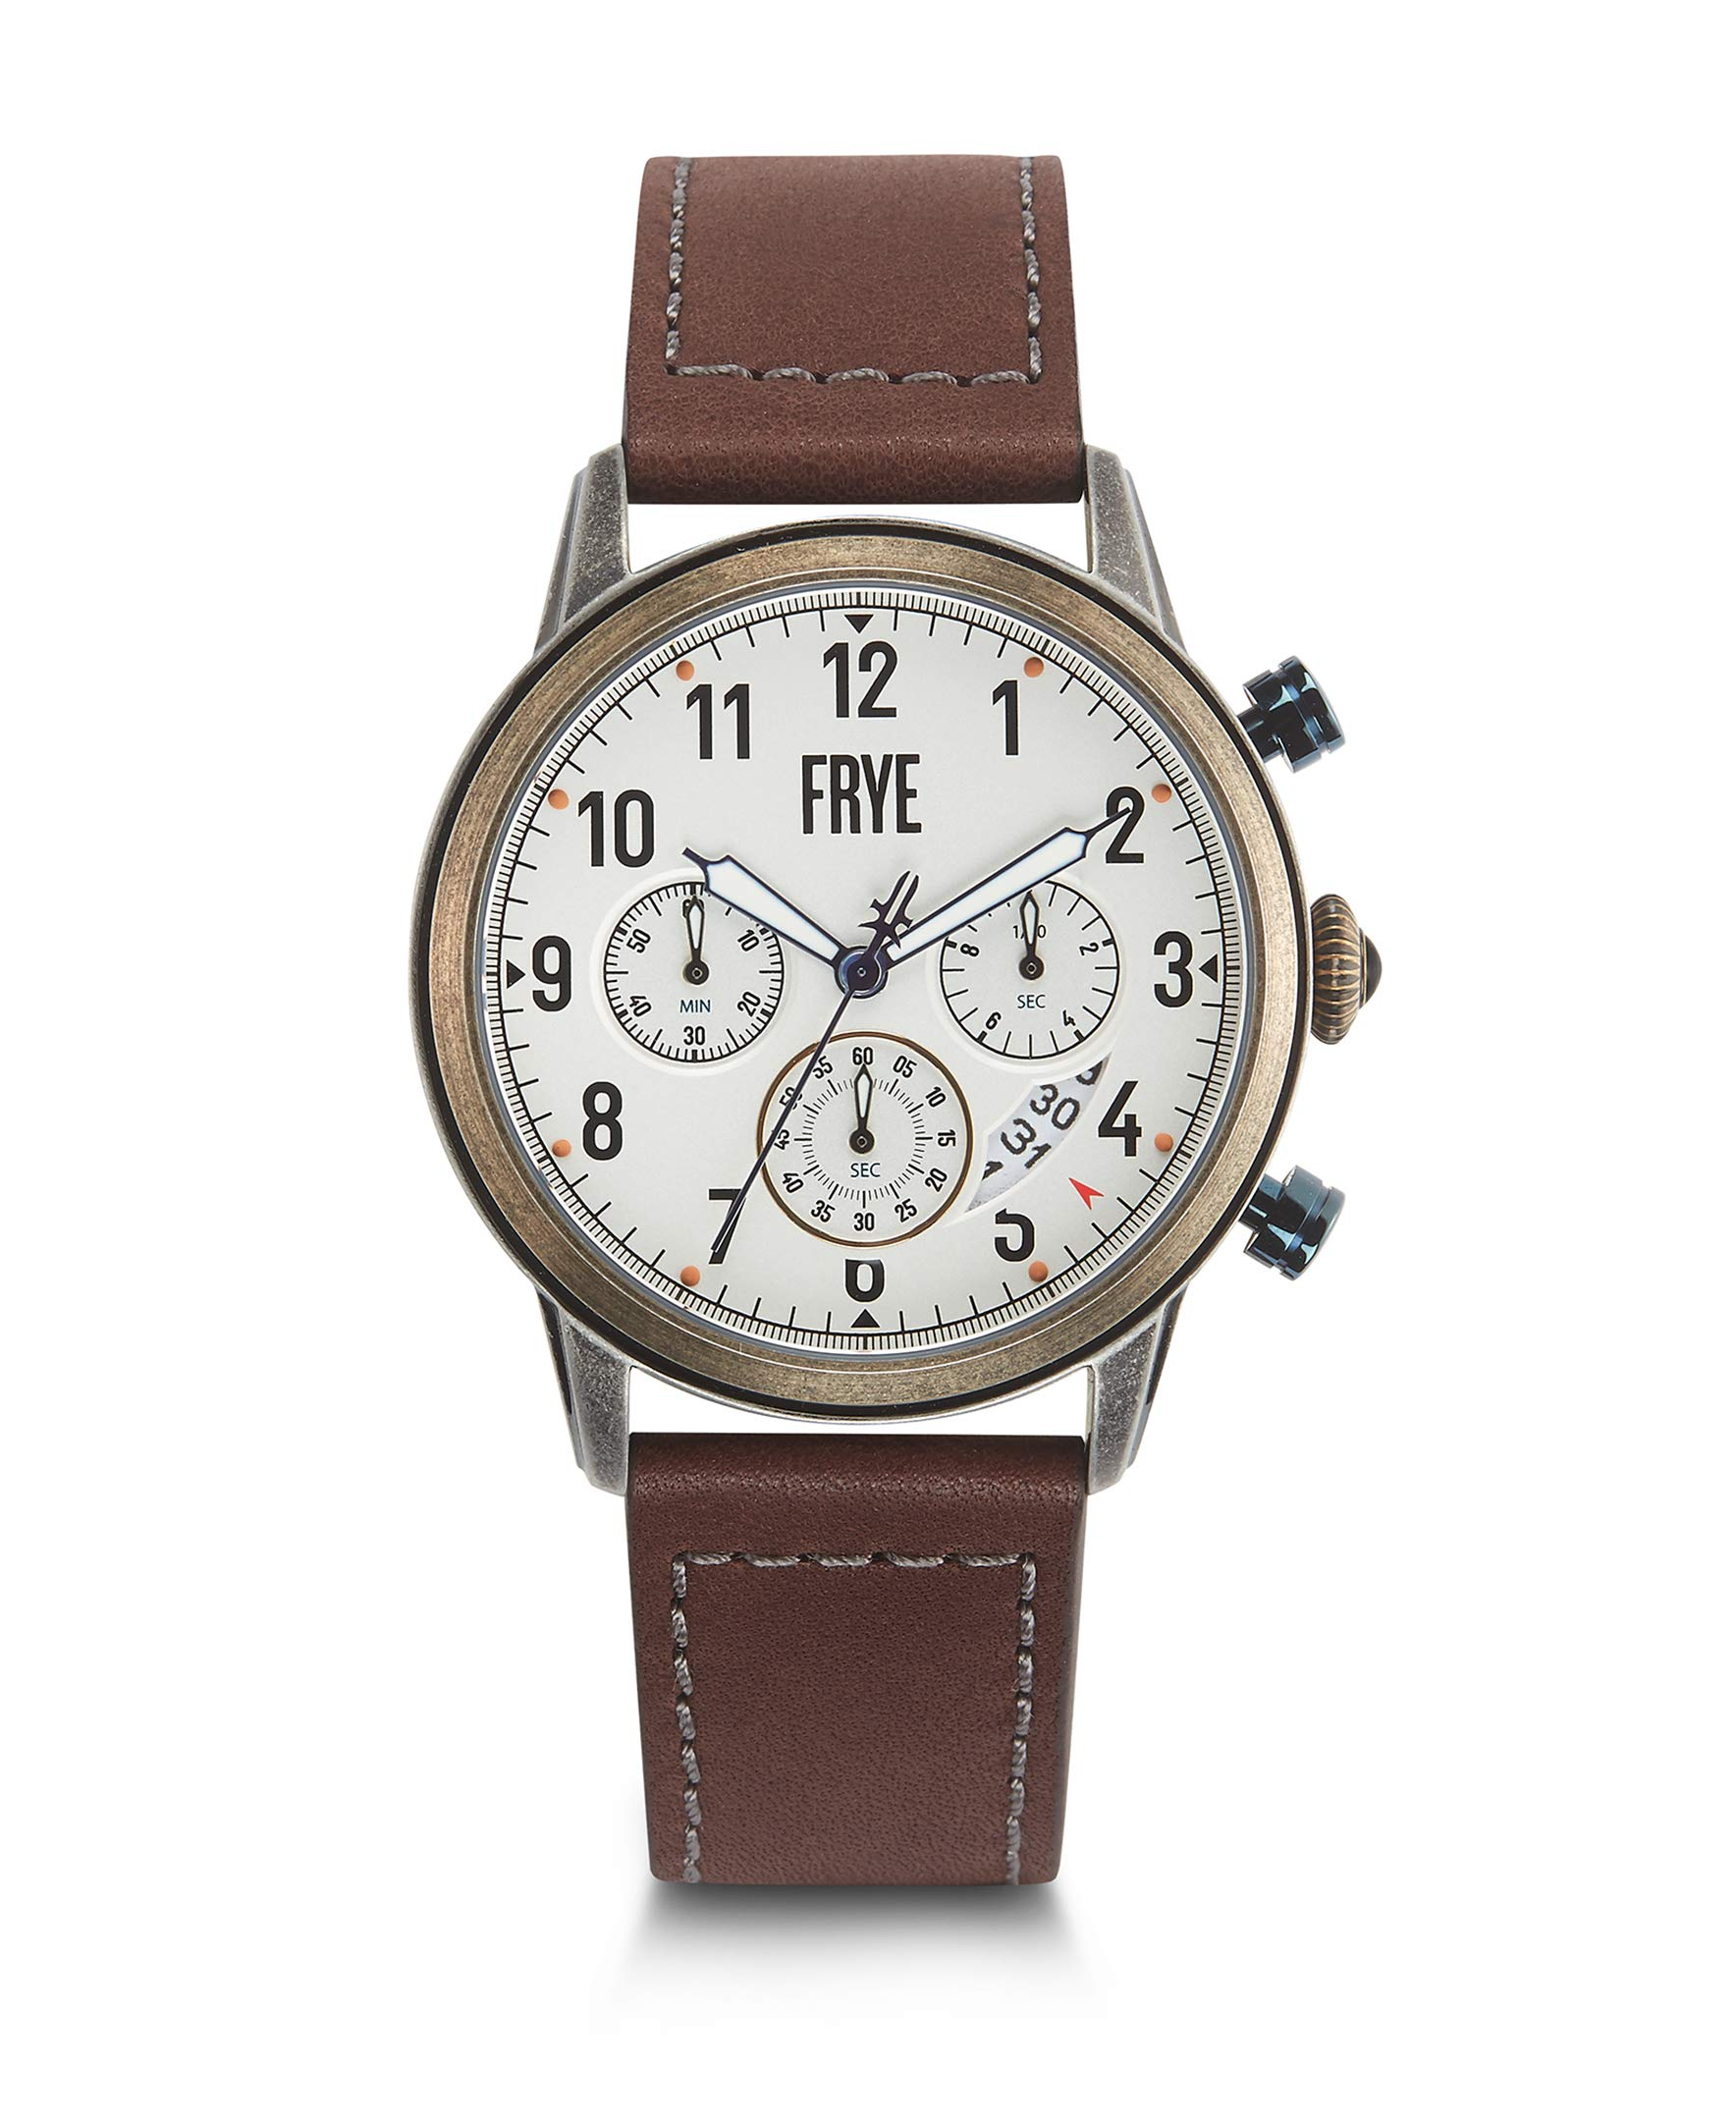 FRYE Men's Graham Stainless Steel Japanese Quartz Leather Strap, Brown, 24 Casual Watch (Model: 37FR00009-04) by FRYE